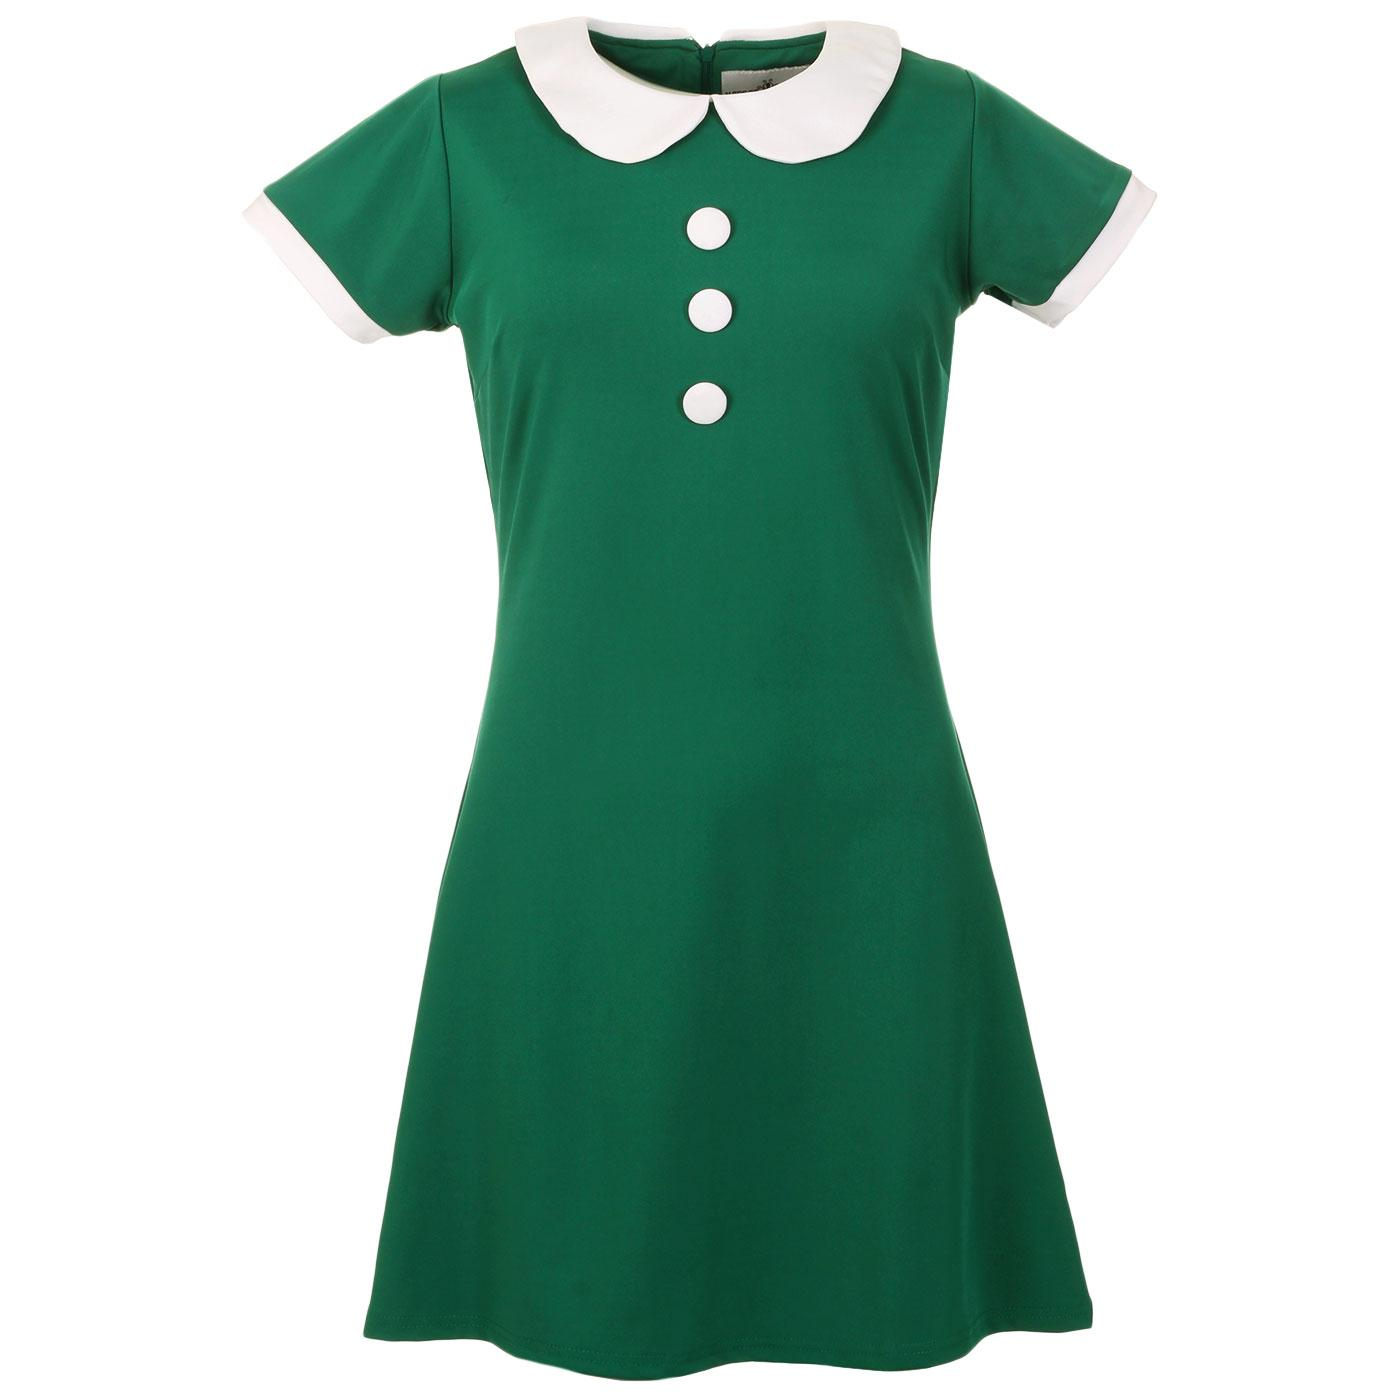 Madcap England Dollierocker 60s Mod Peter Pan Collar Dress in Teal